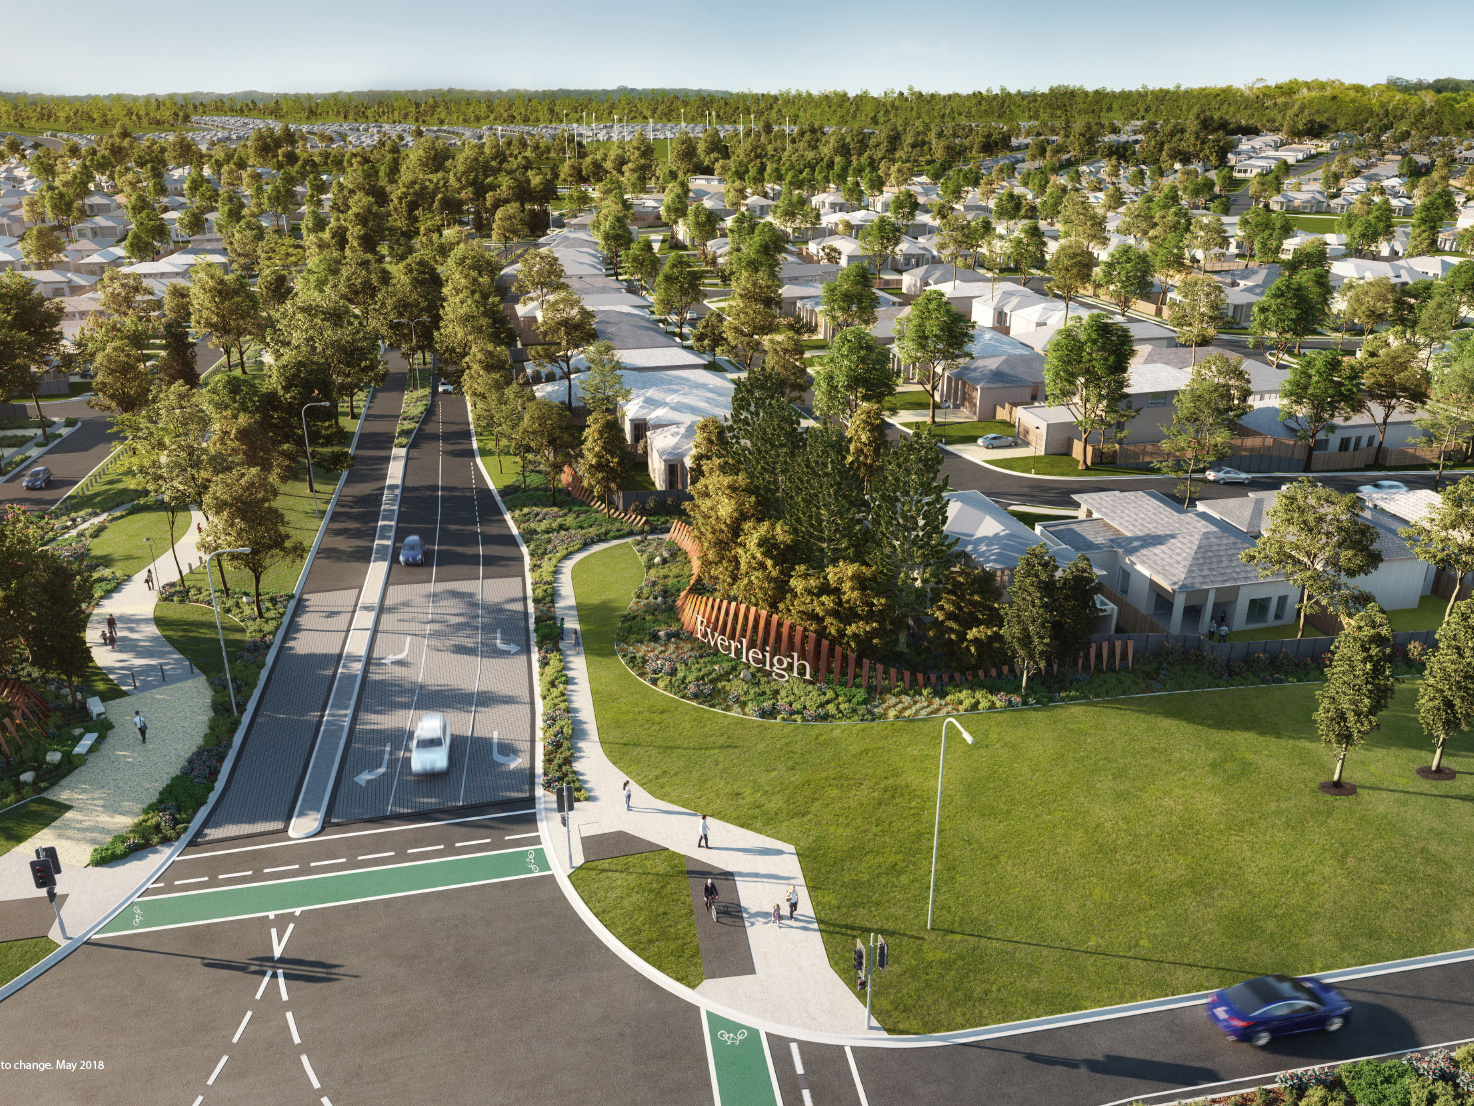 Mirvac has opened a new $5.1 million parkland to the public as part of its Everleigh masterplanned community in Greenbank, located on the Eva Creek in central Queensland, a distance of about 1380km northwest from Brisbane. Image: Supplied.